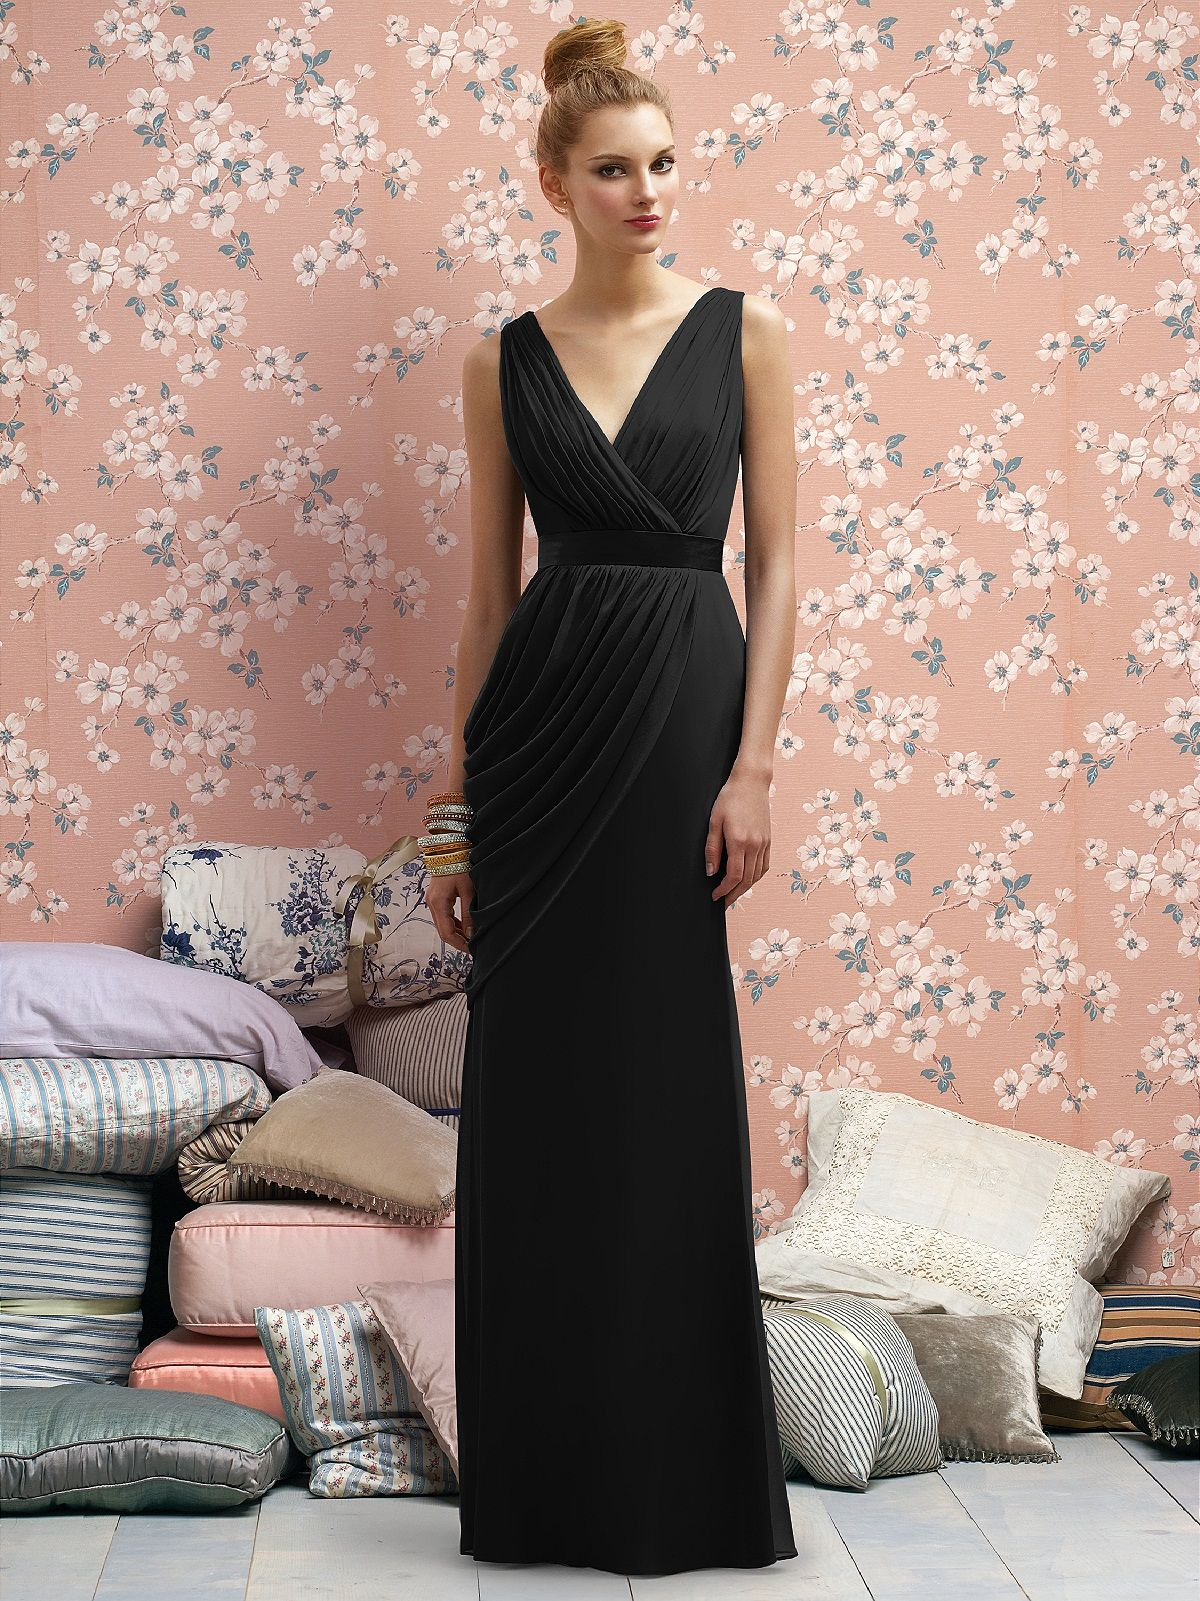 Lela rose bridesmaids style lr174 girls black dress black lela rose black bridesmaid dress so excited to find my girls black dresses ombrellifo Gallery